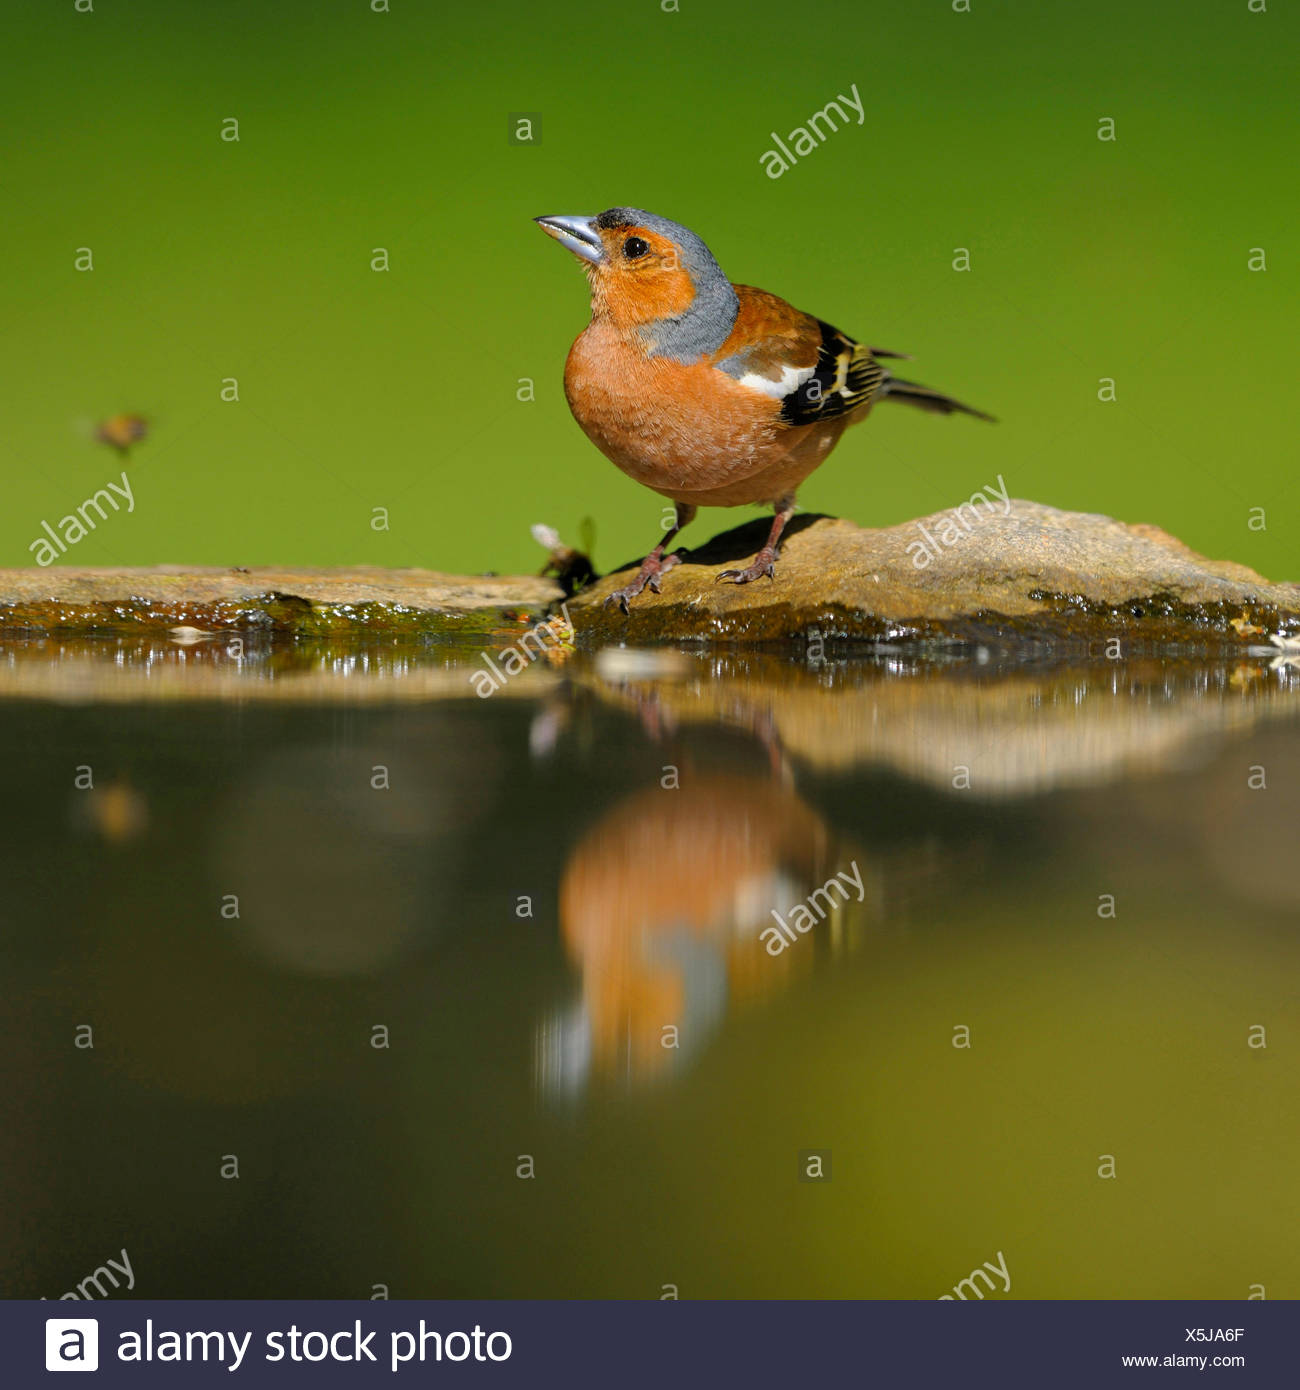 chaffinch (Fringilla coelebs), male drinks at a bird bath, Germany - Stock Image